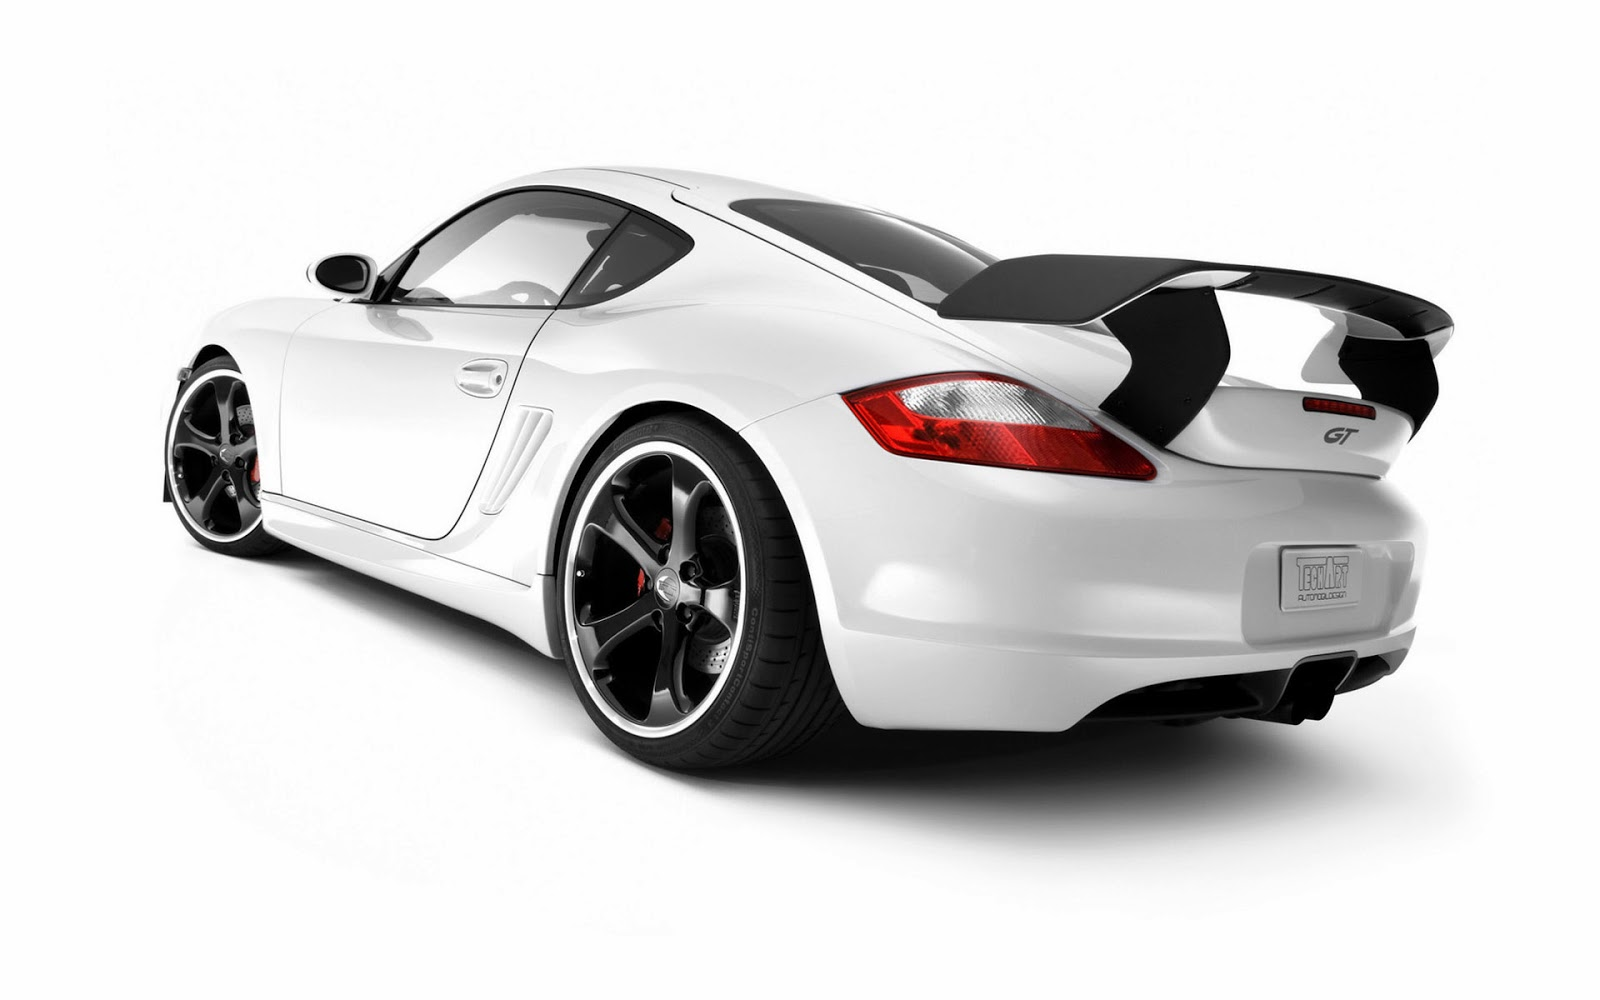 http://www.crazywallpapers.in/2014/03/porsche-gt-white-best-wallpapers.html